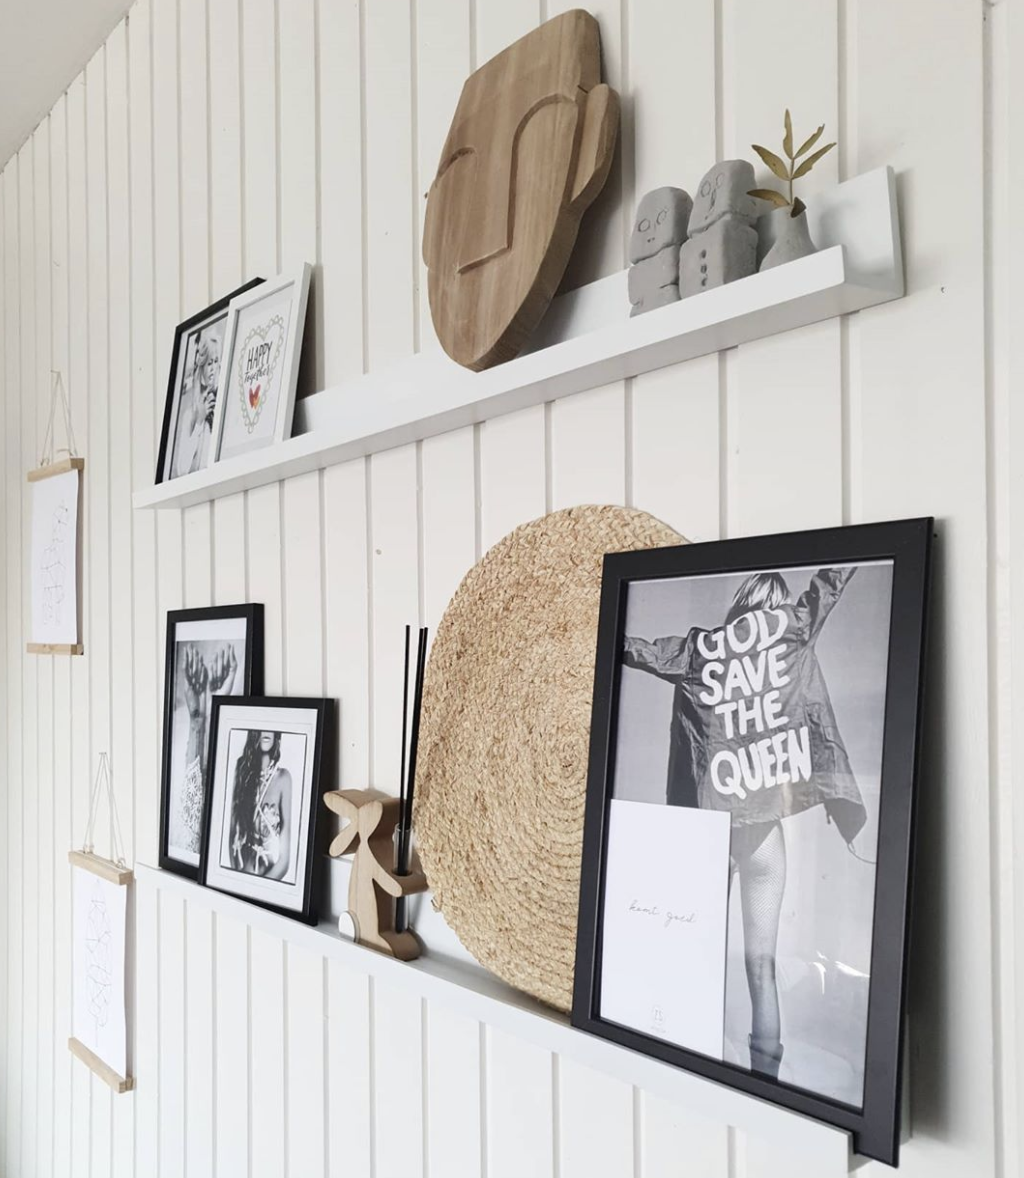 264 Instagram interieur inspiratie top 5